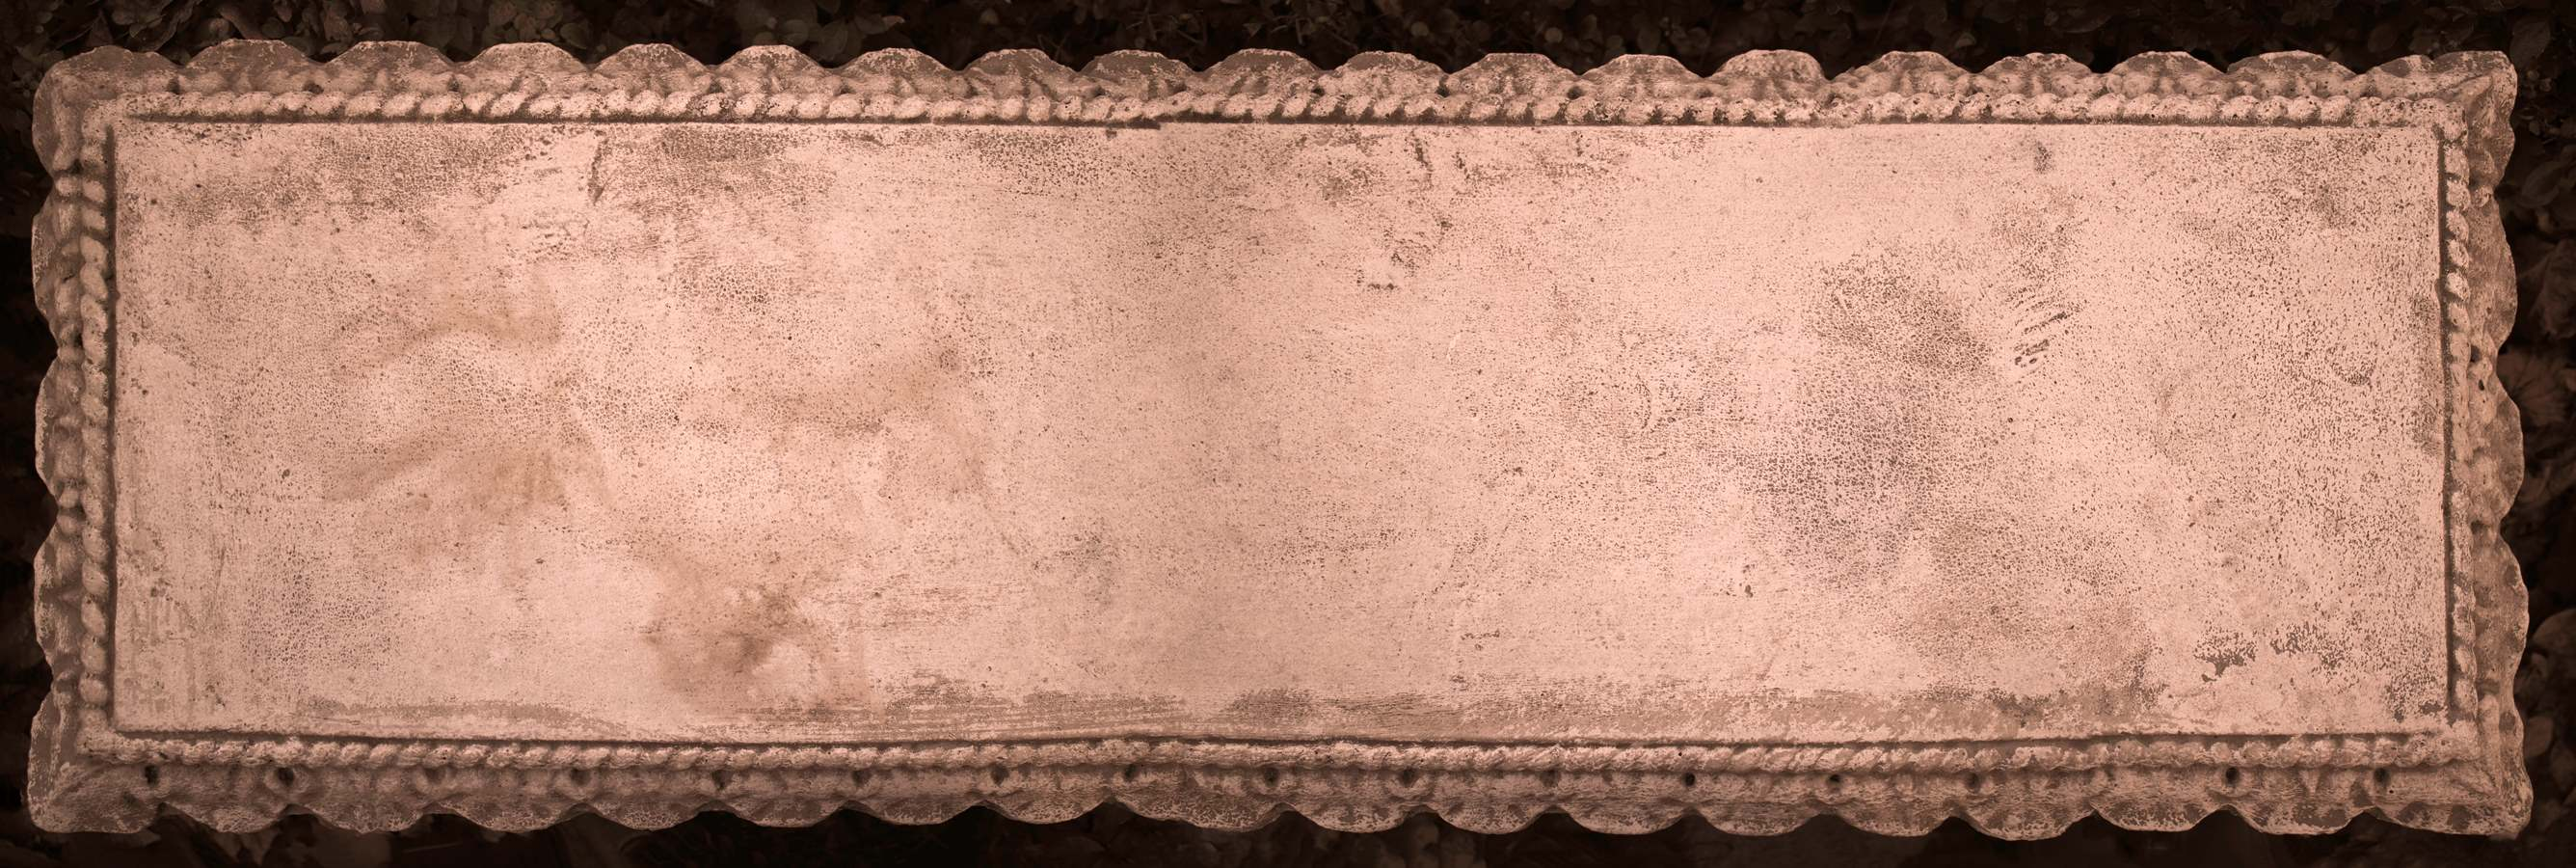 Clean old grave concrete slab photohdx for How to clean concrete slabs